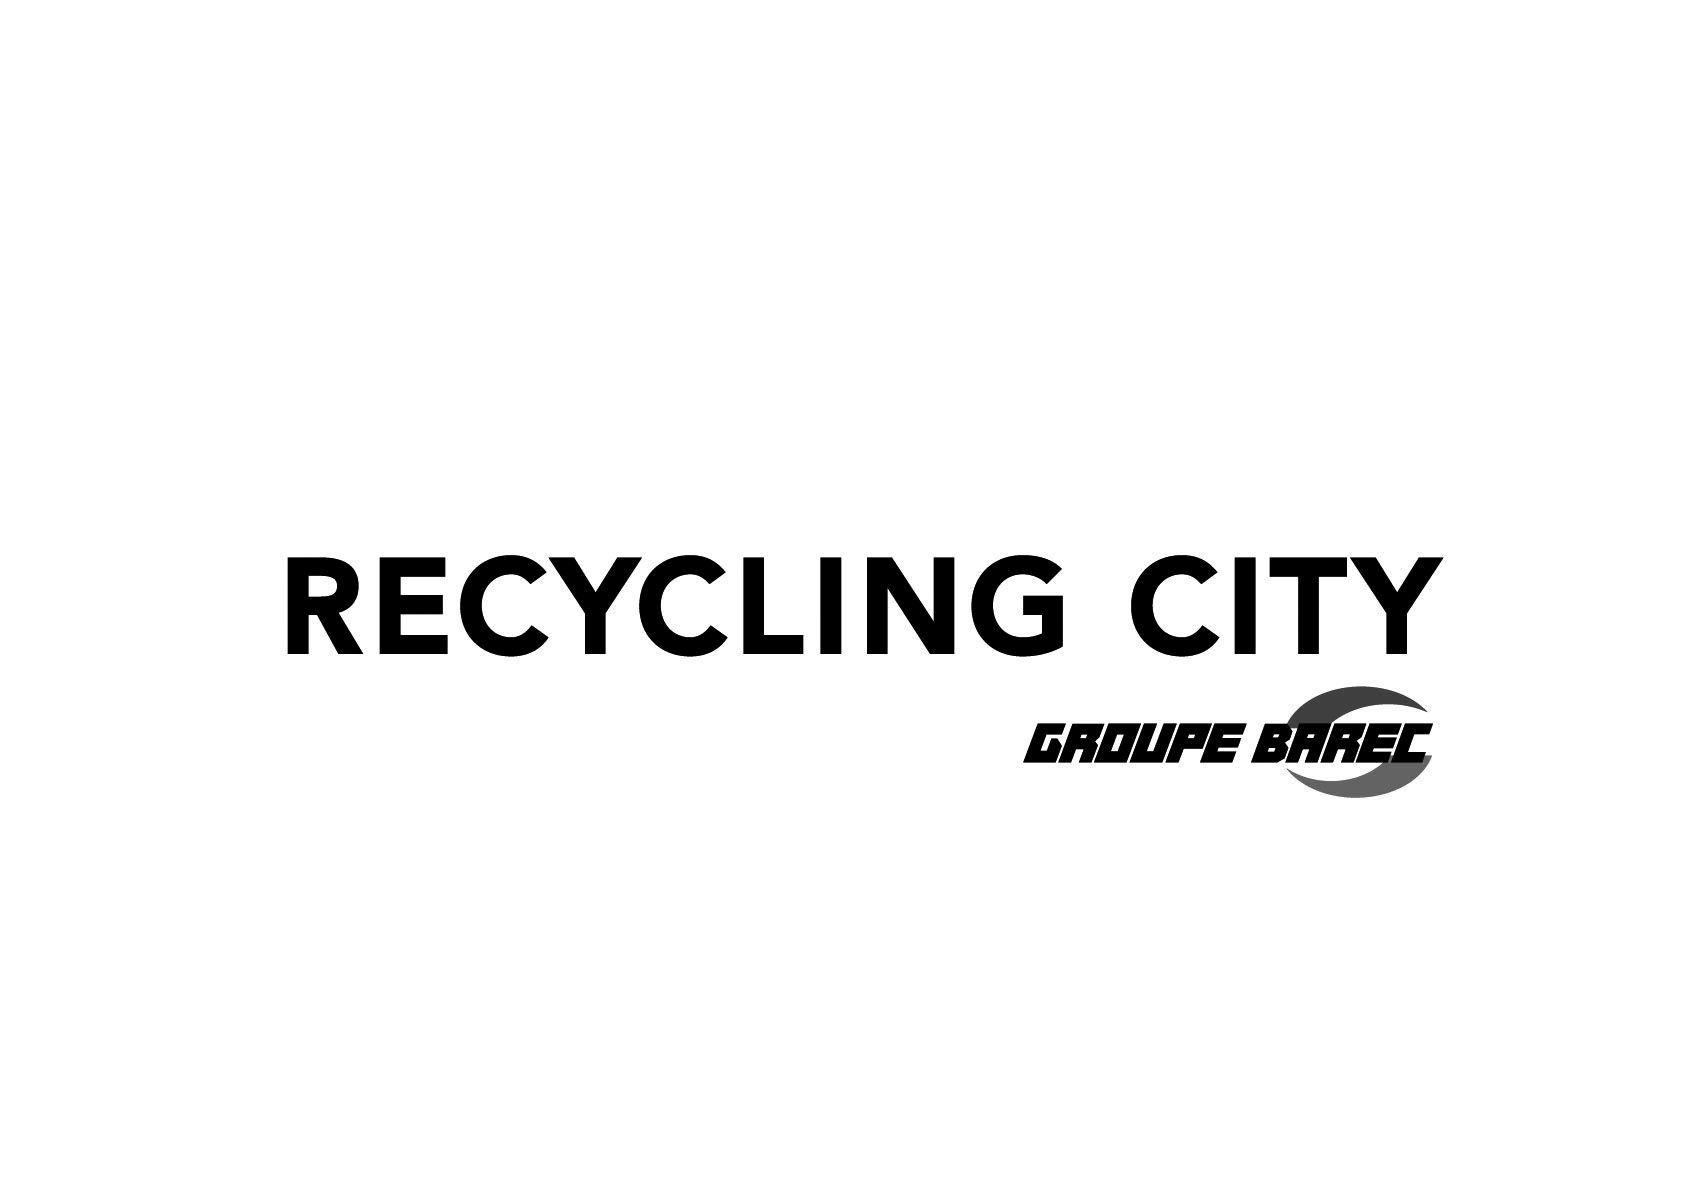 RECYCLING CITY GROUPE BAREC